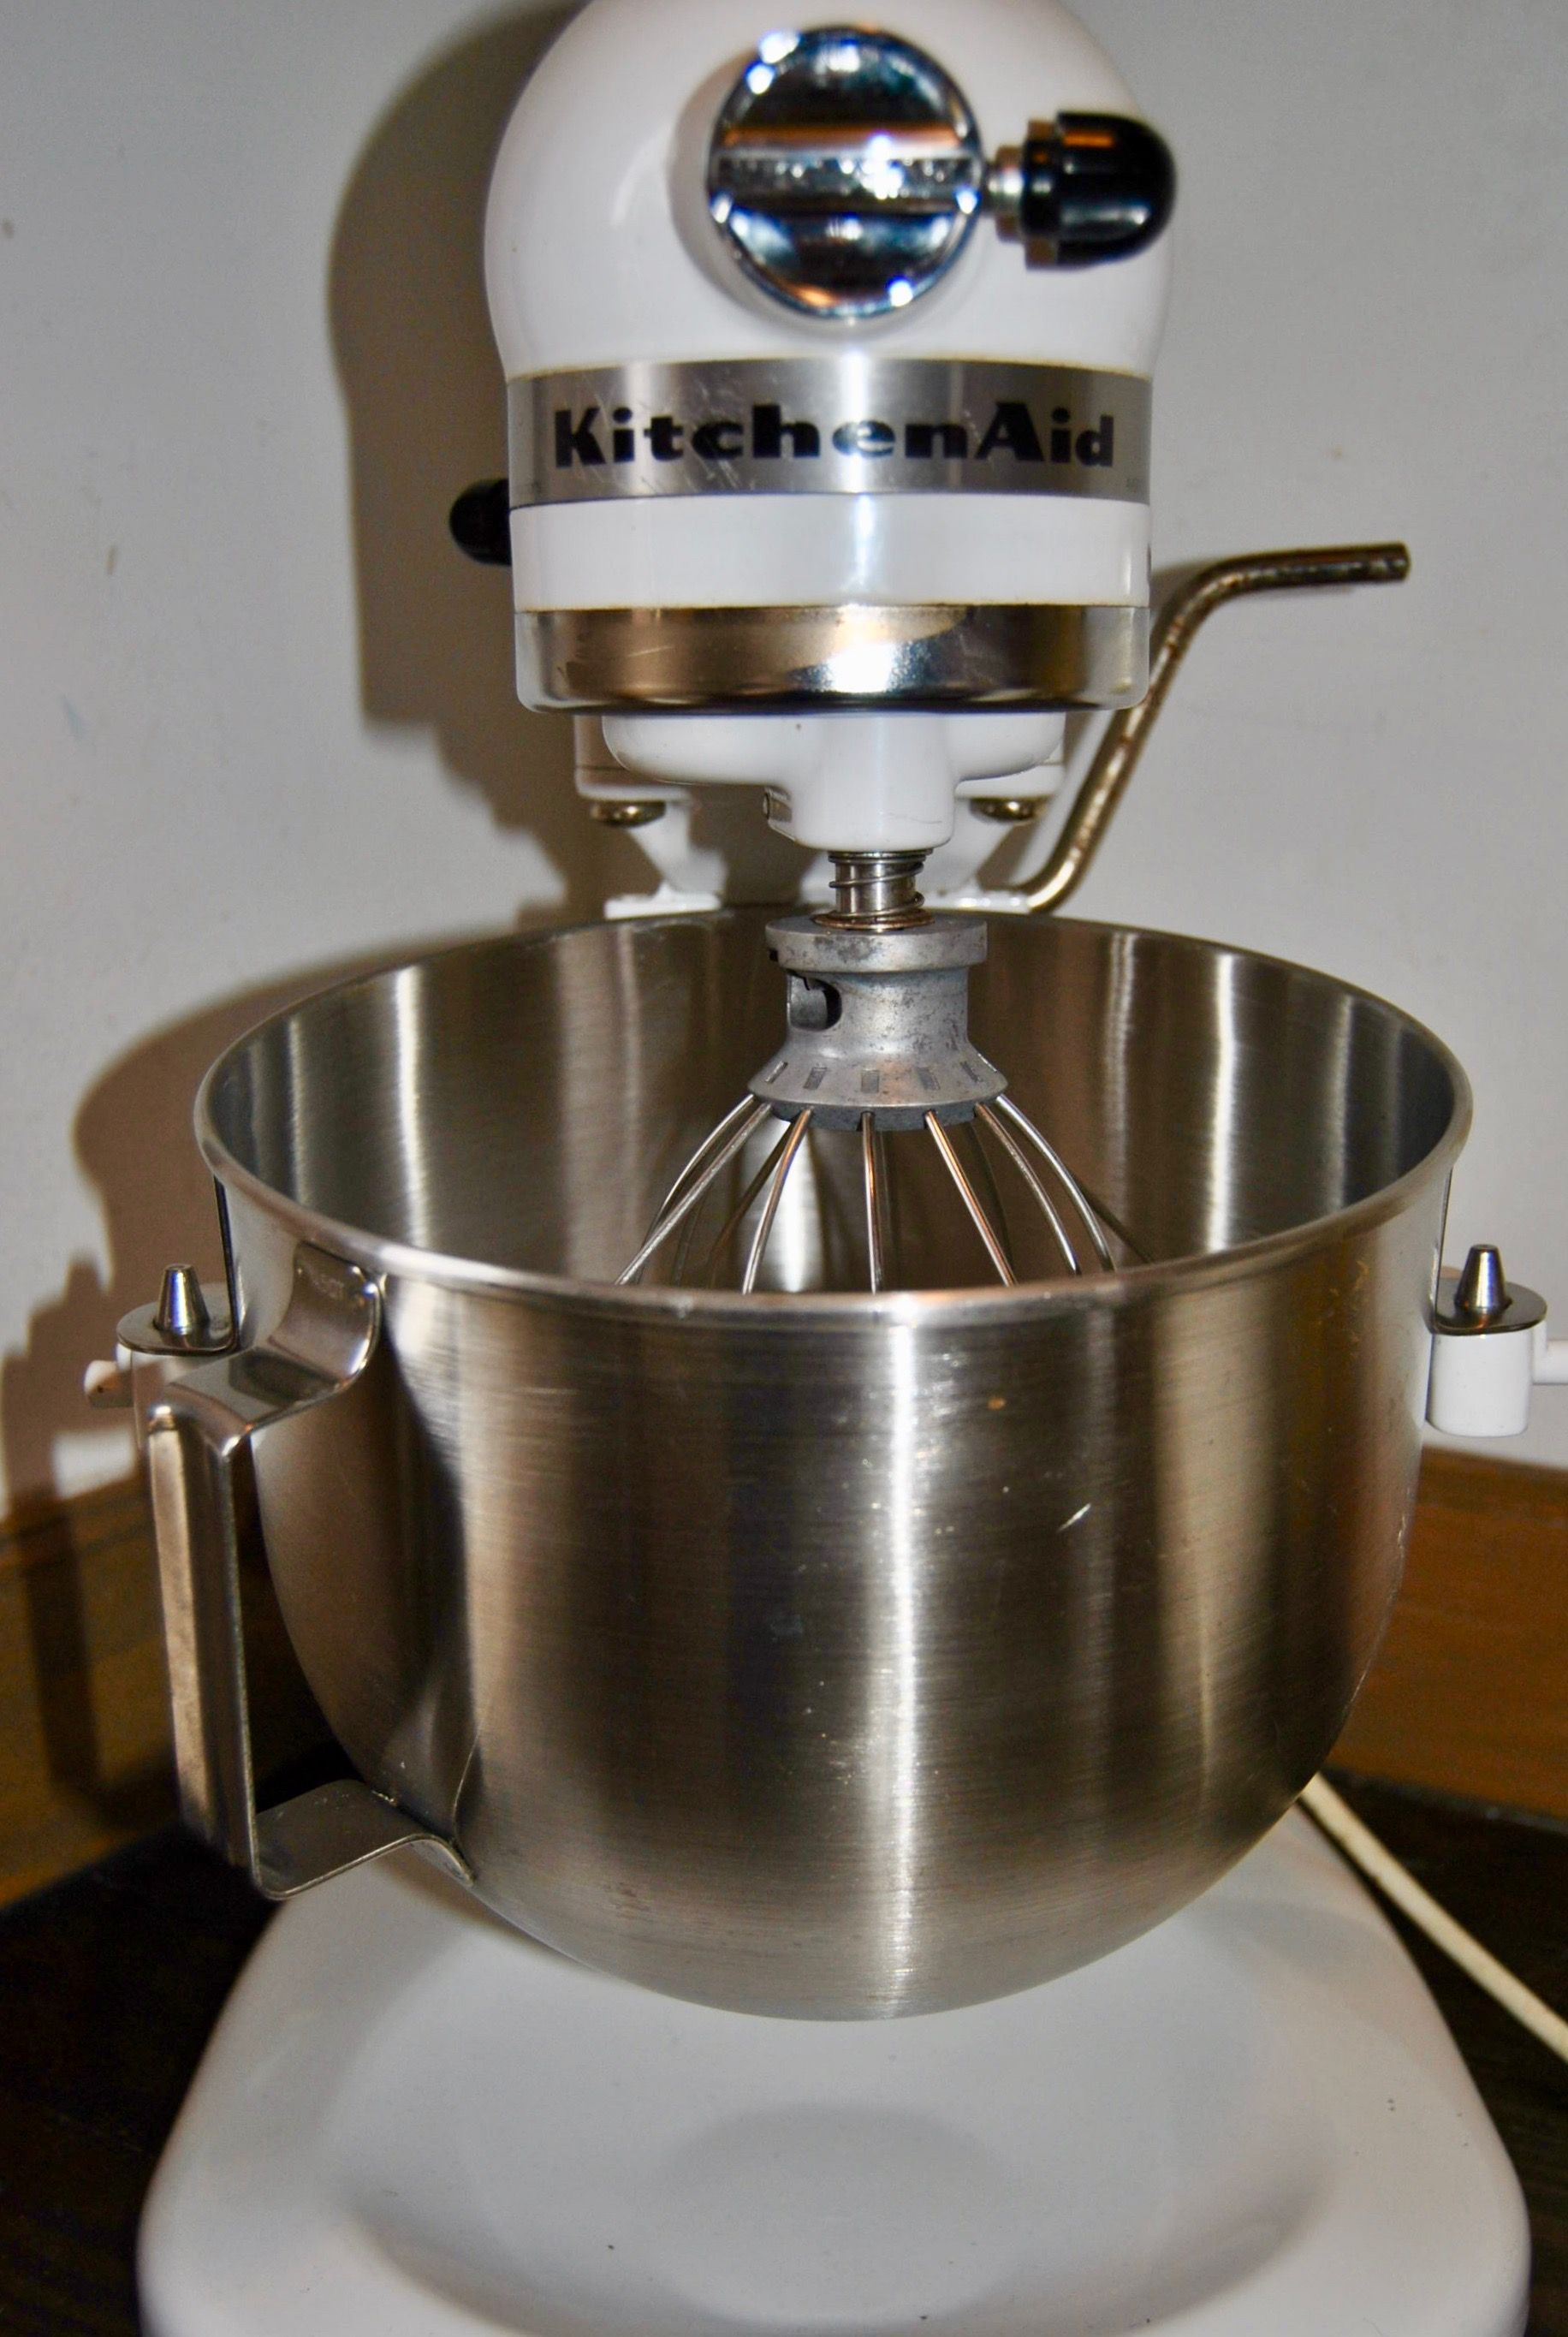 Featherbed Island House has a new (to us) KitchenAid stand